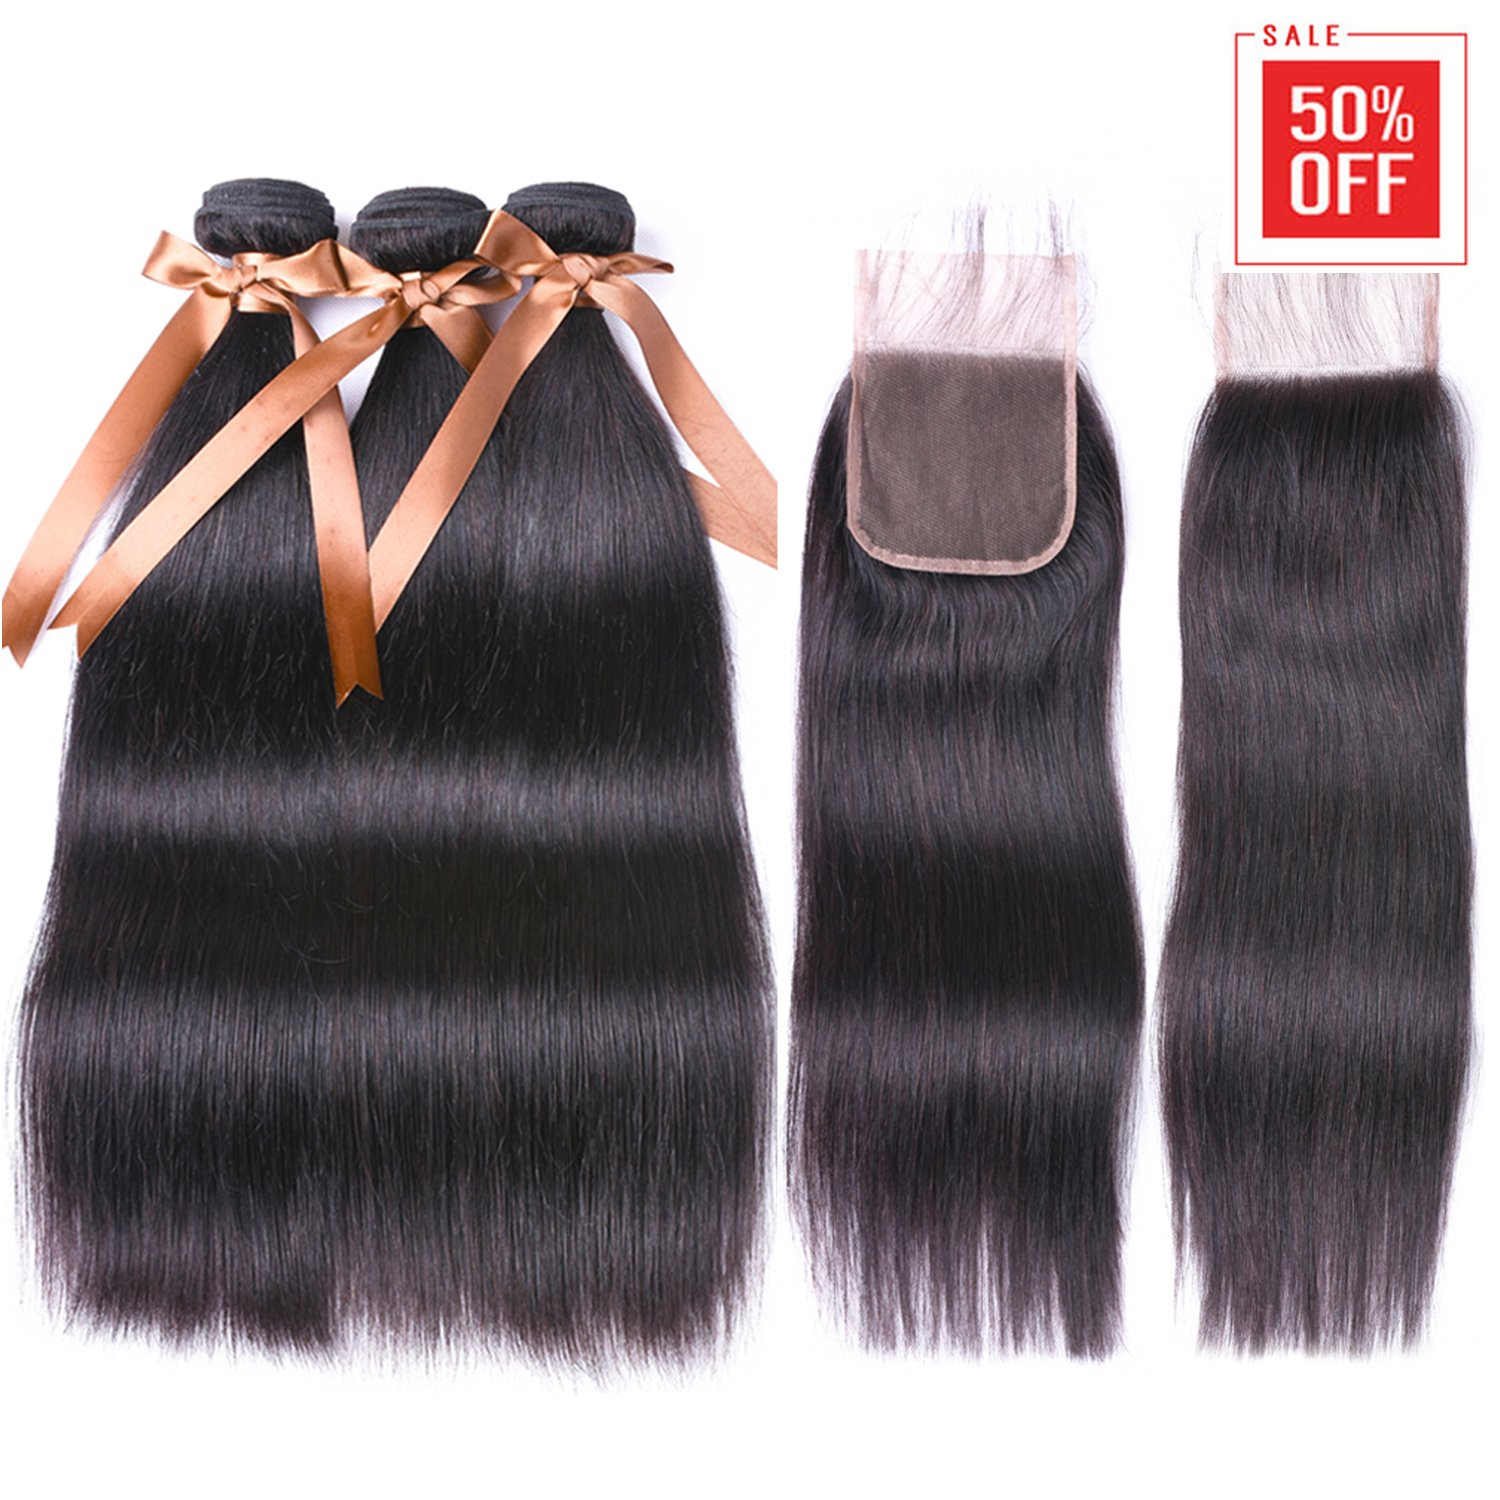 Allrun Hair 7A Brazilian Virgin Human Hair 3 Bundles With (4x 4) Lace Closure Straight Wave Weft 100% Real Human Hair Extensions Natural Color (16 18 20+16''Closure)